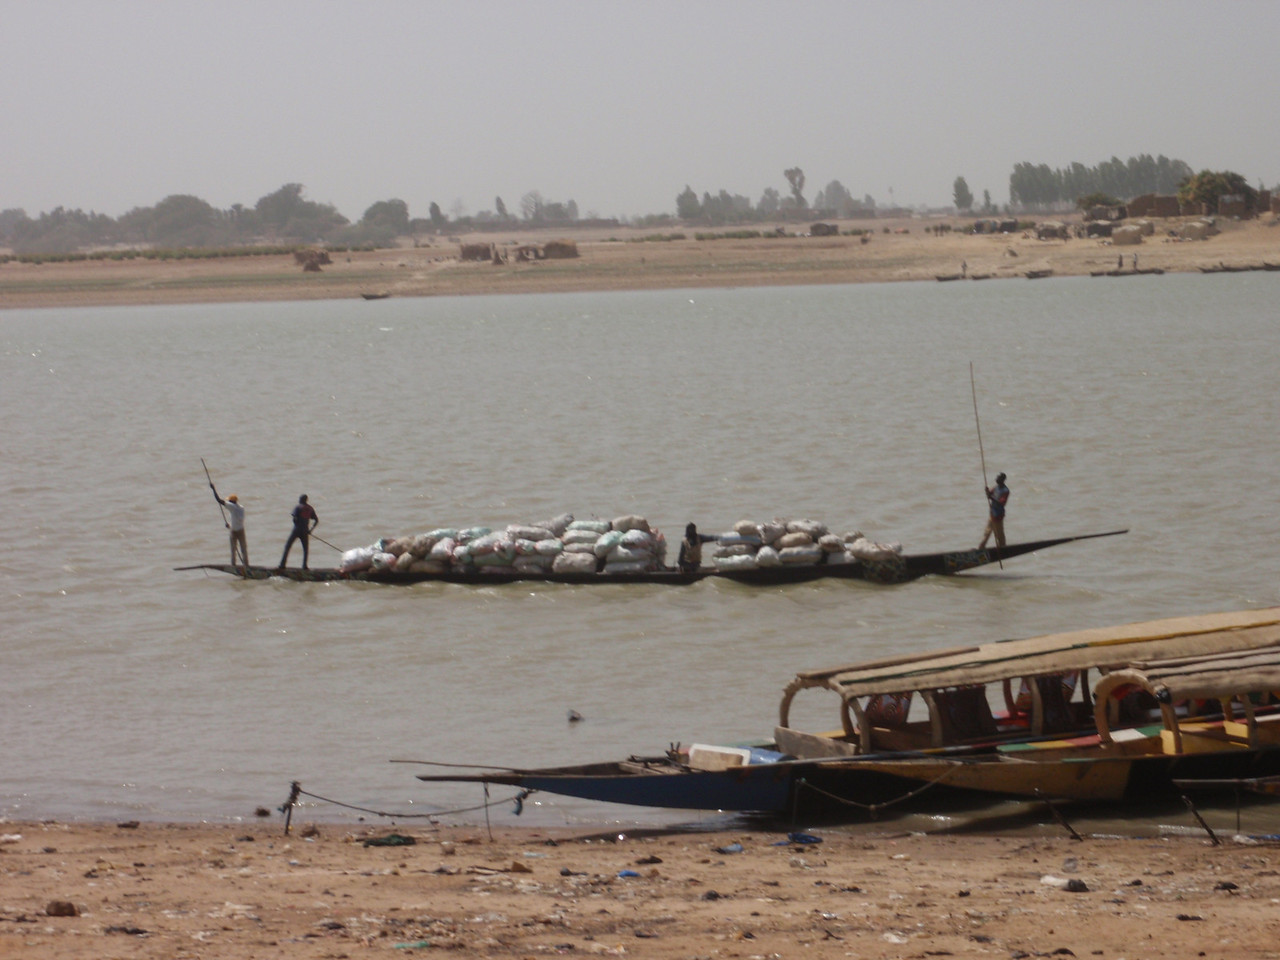 347_Niger River  Pirogue Carrying a Variety of Goods